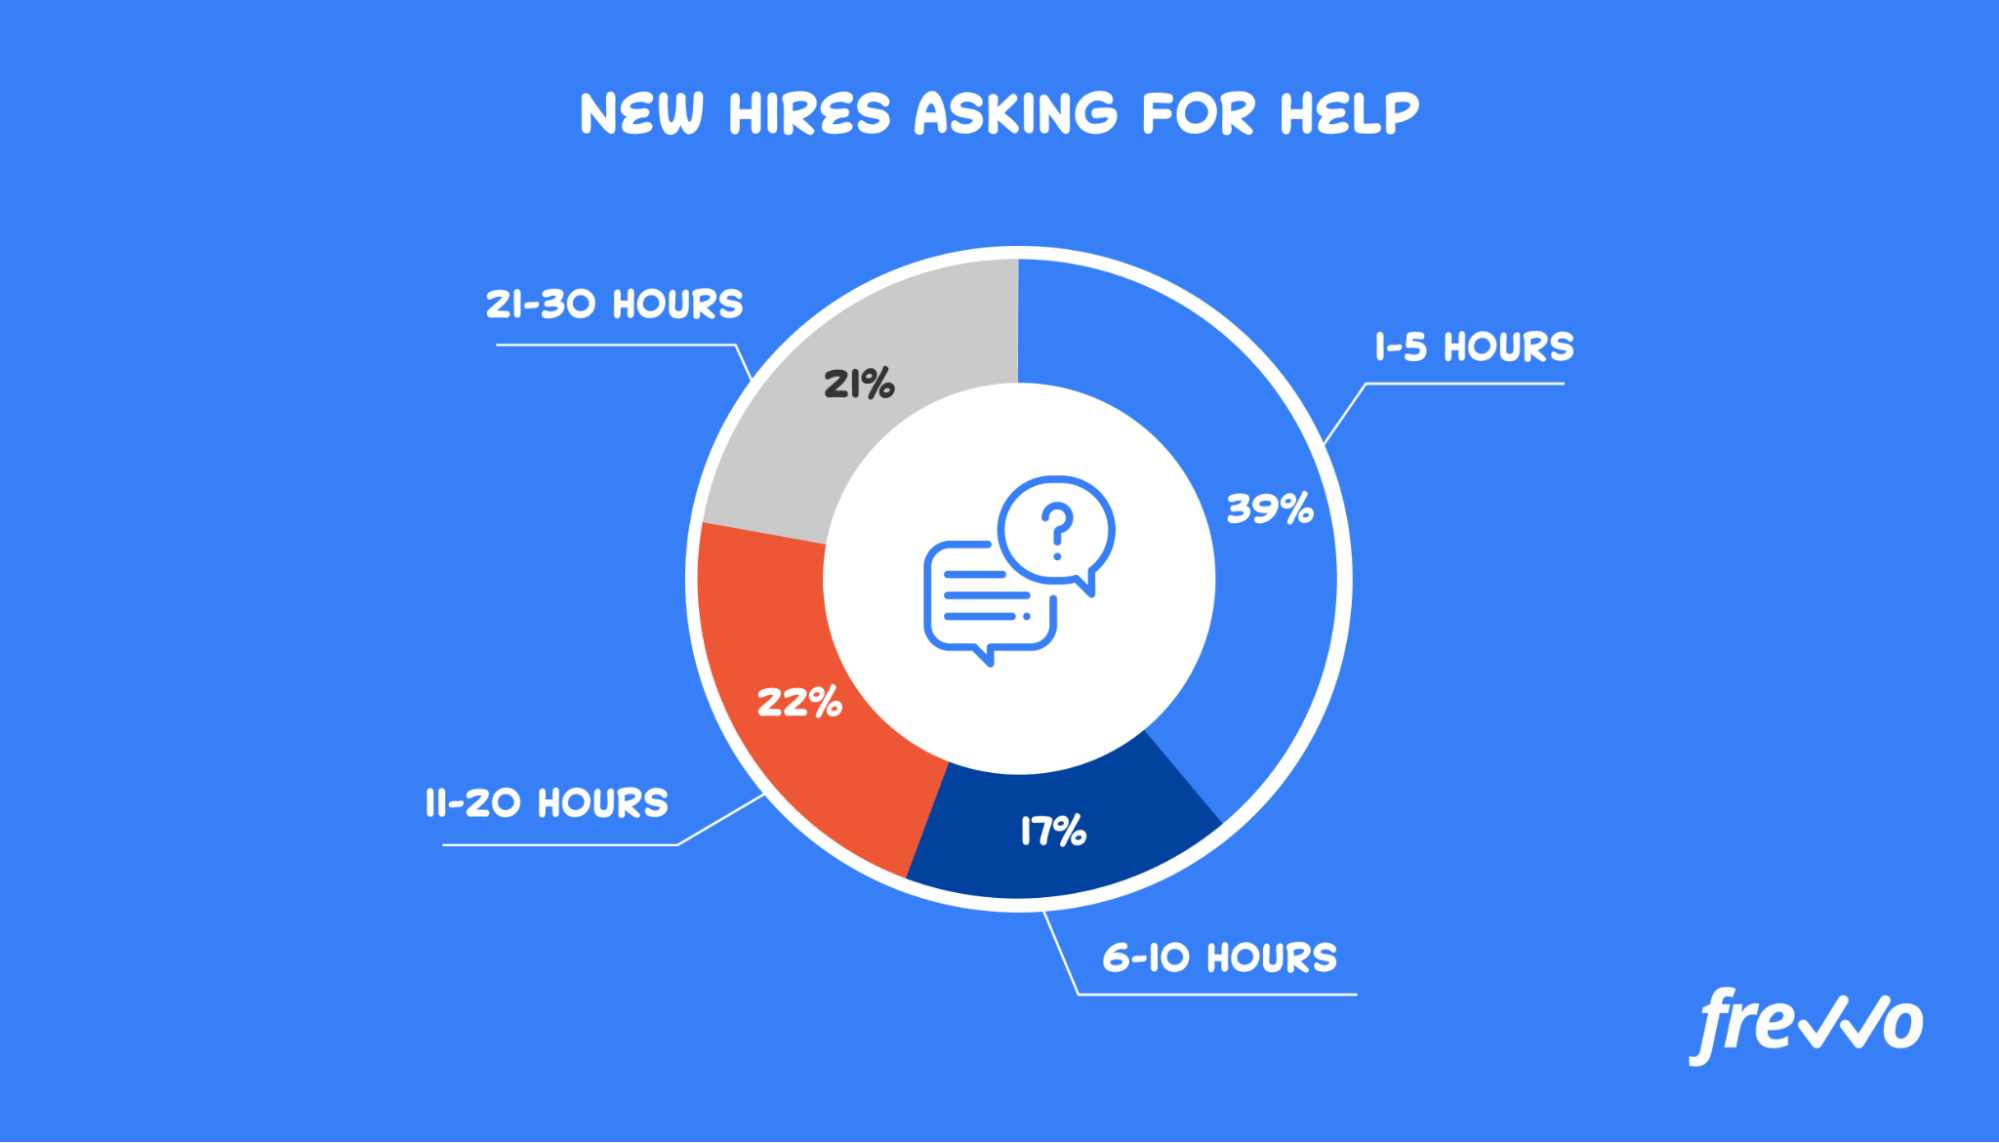 new hires asking for help